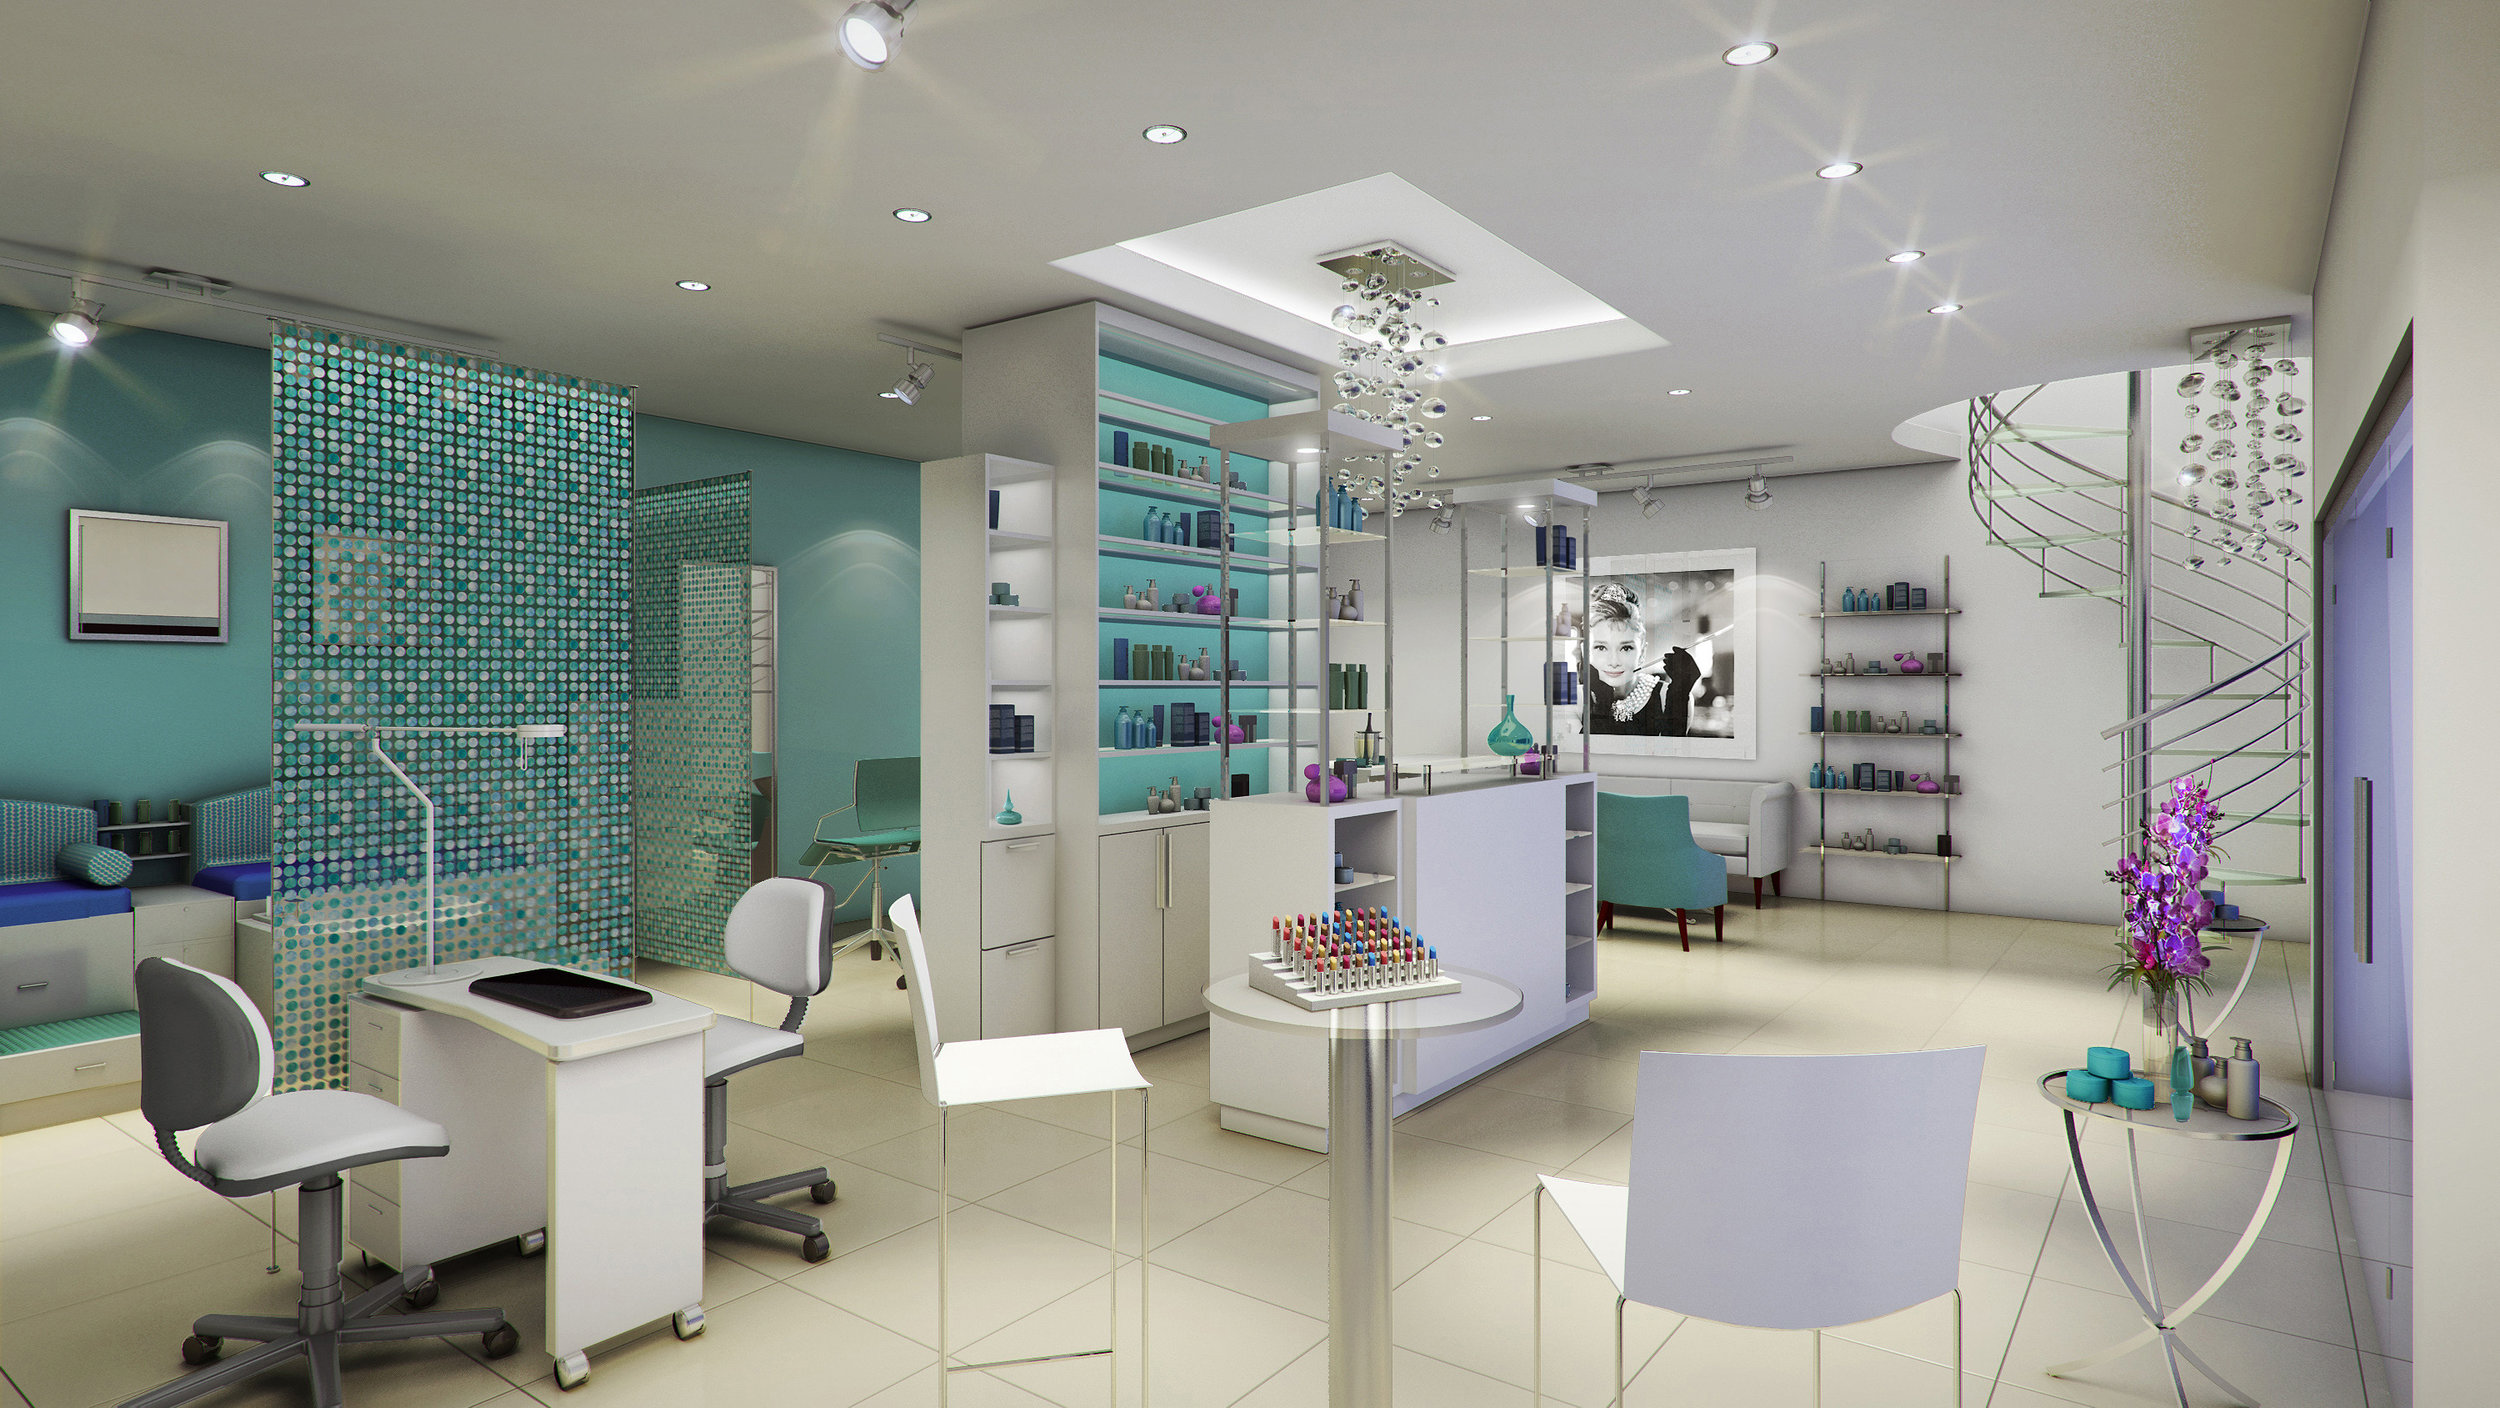 35 - Oasis Salon View 2.jpg